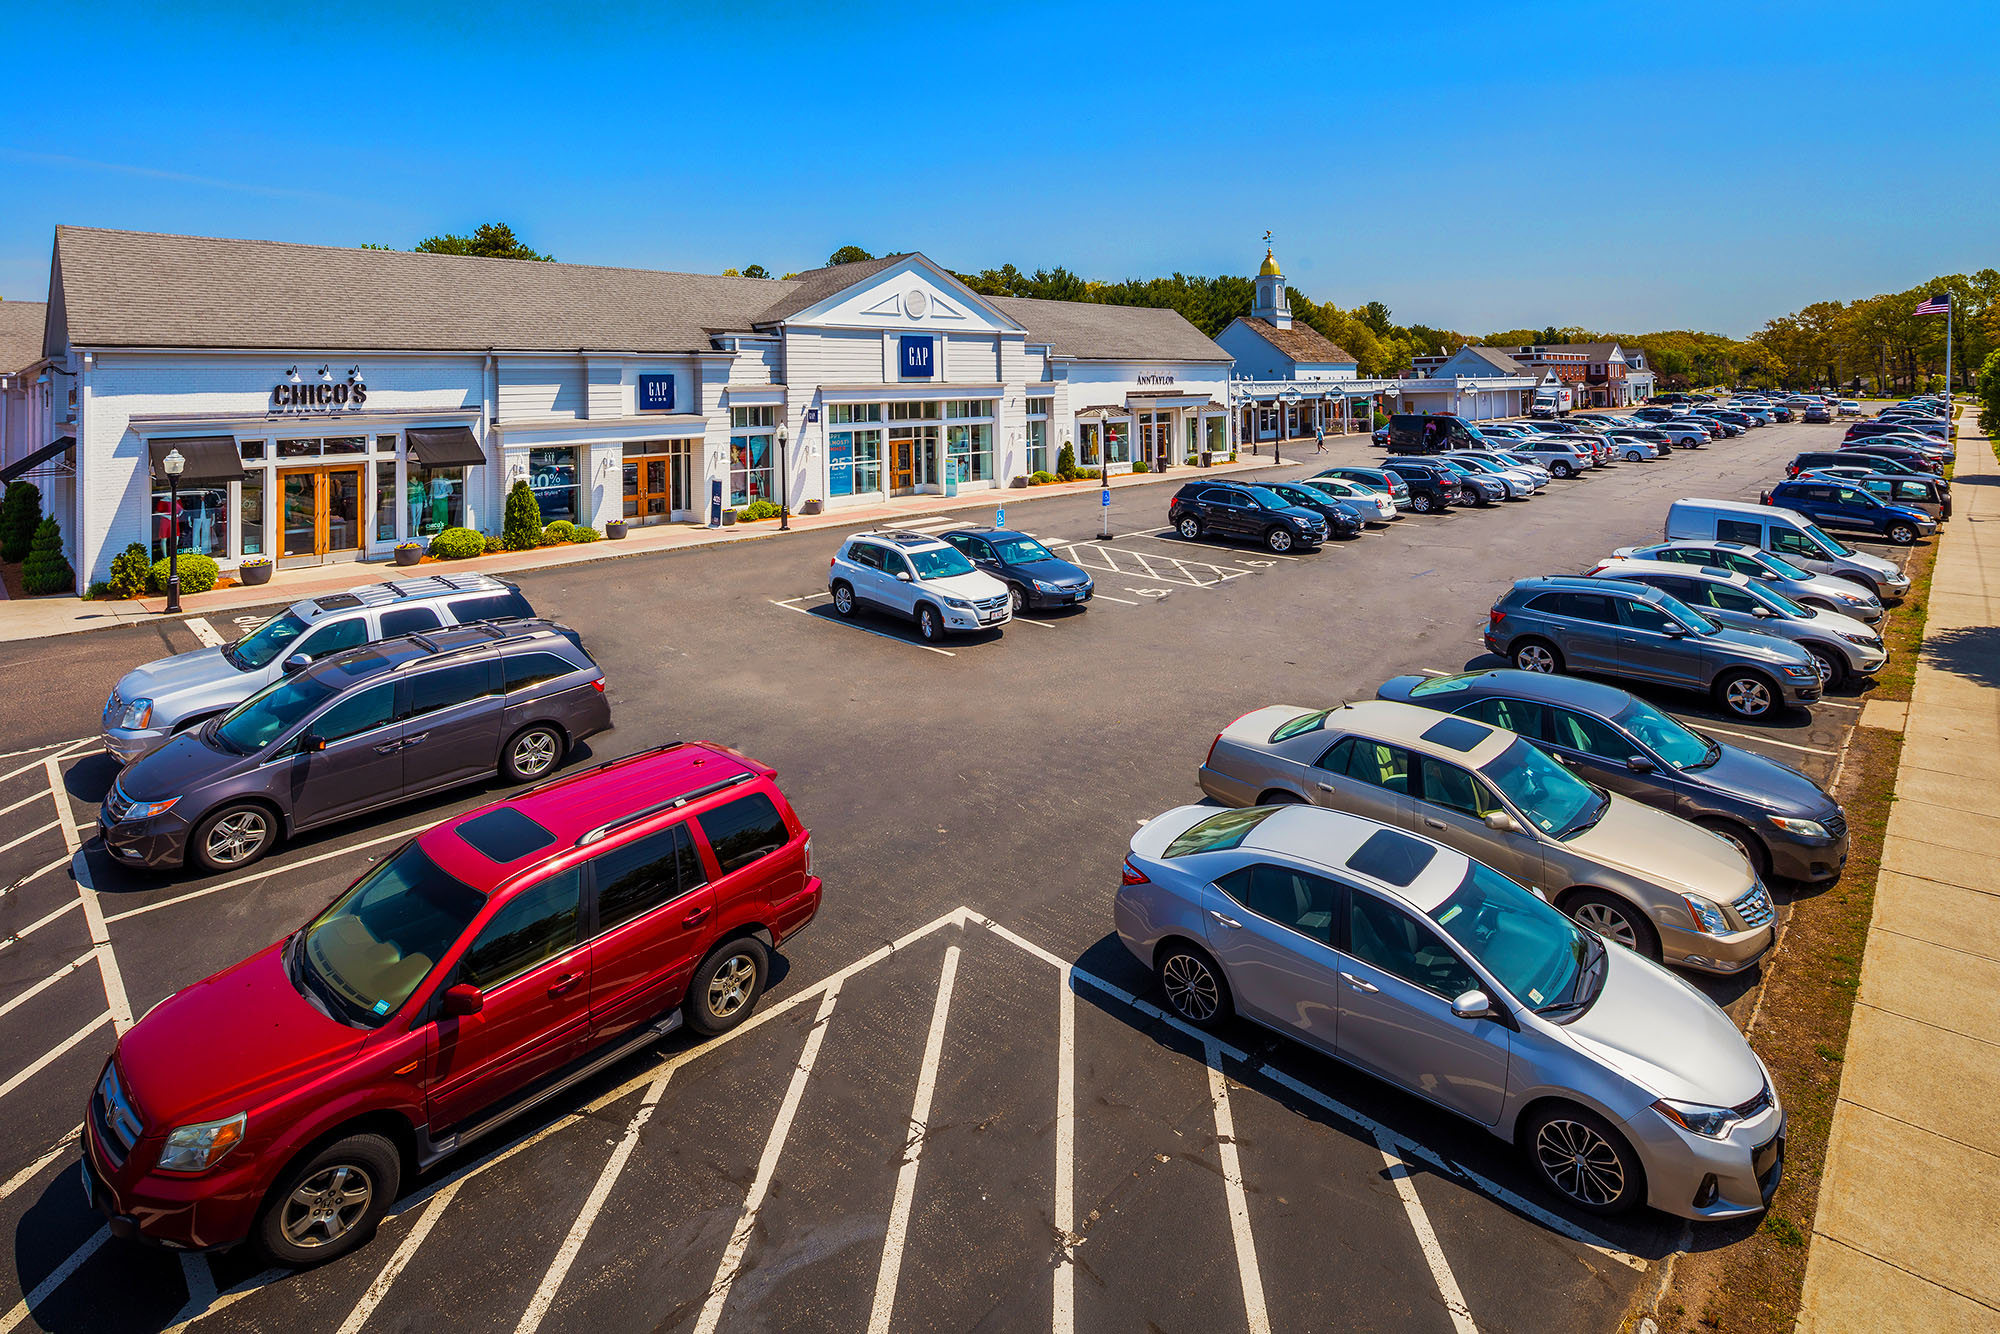 The Longmeadow Shops displaying the parking lot by the Gap